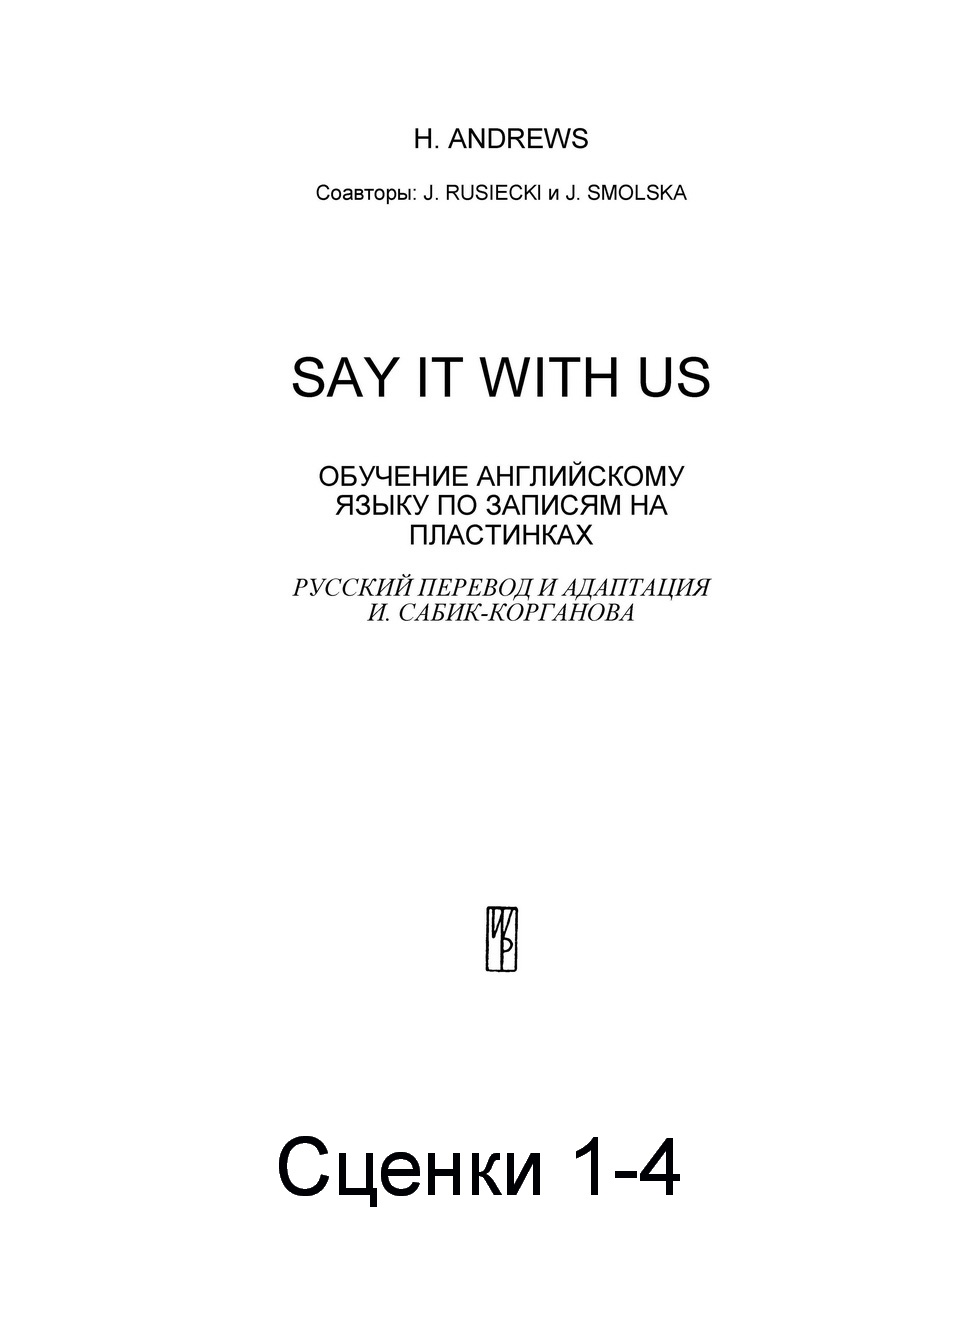 Say It With Us 01-04